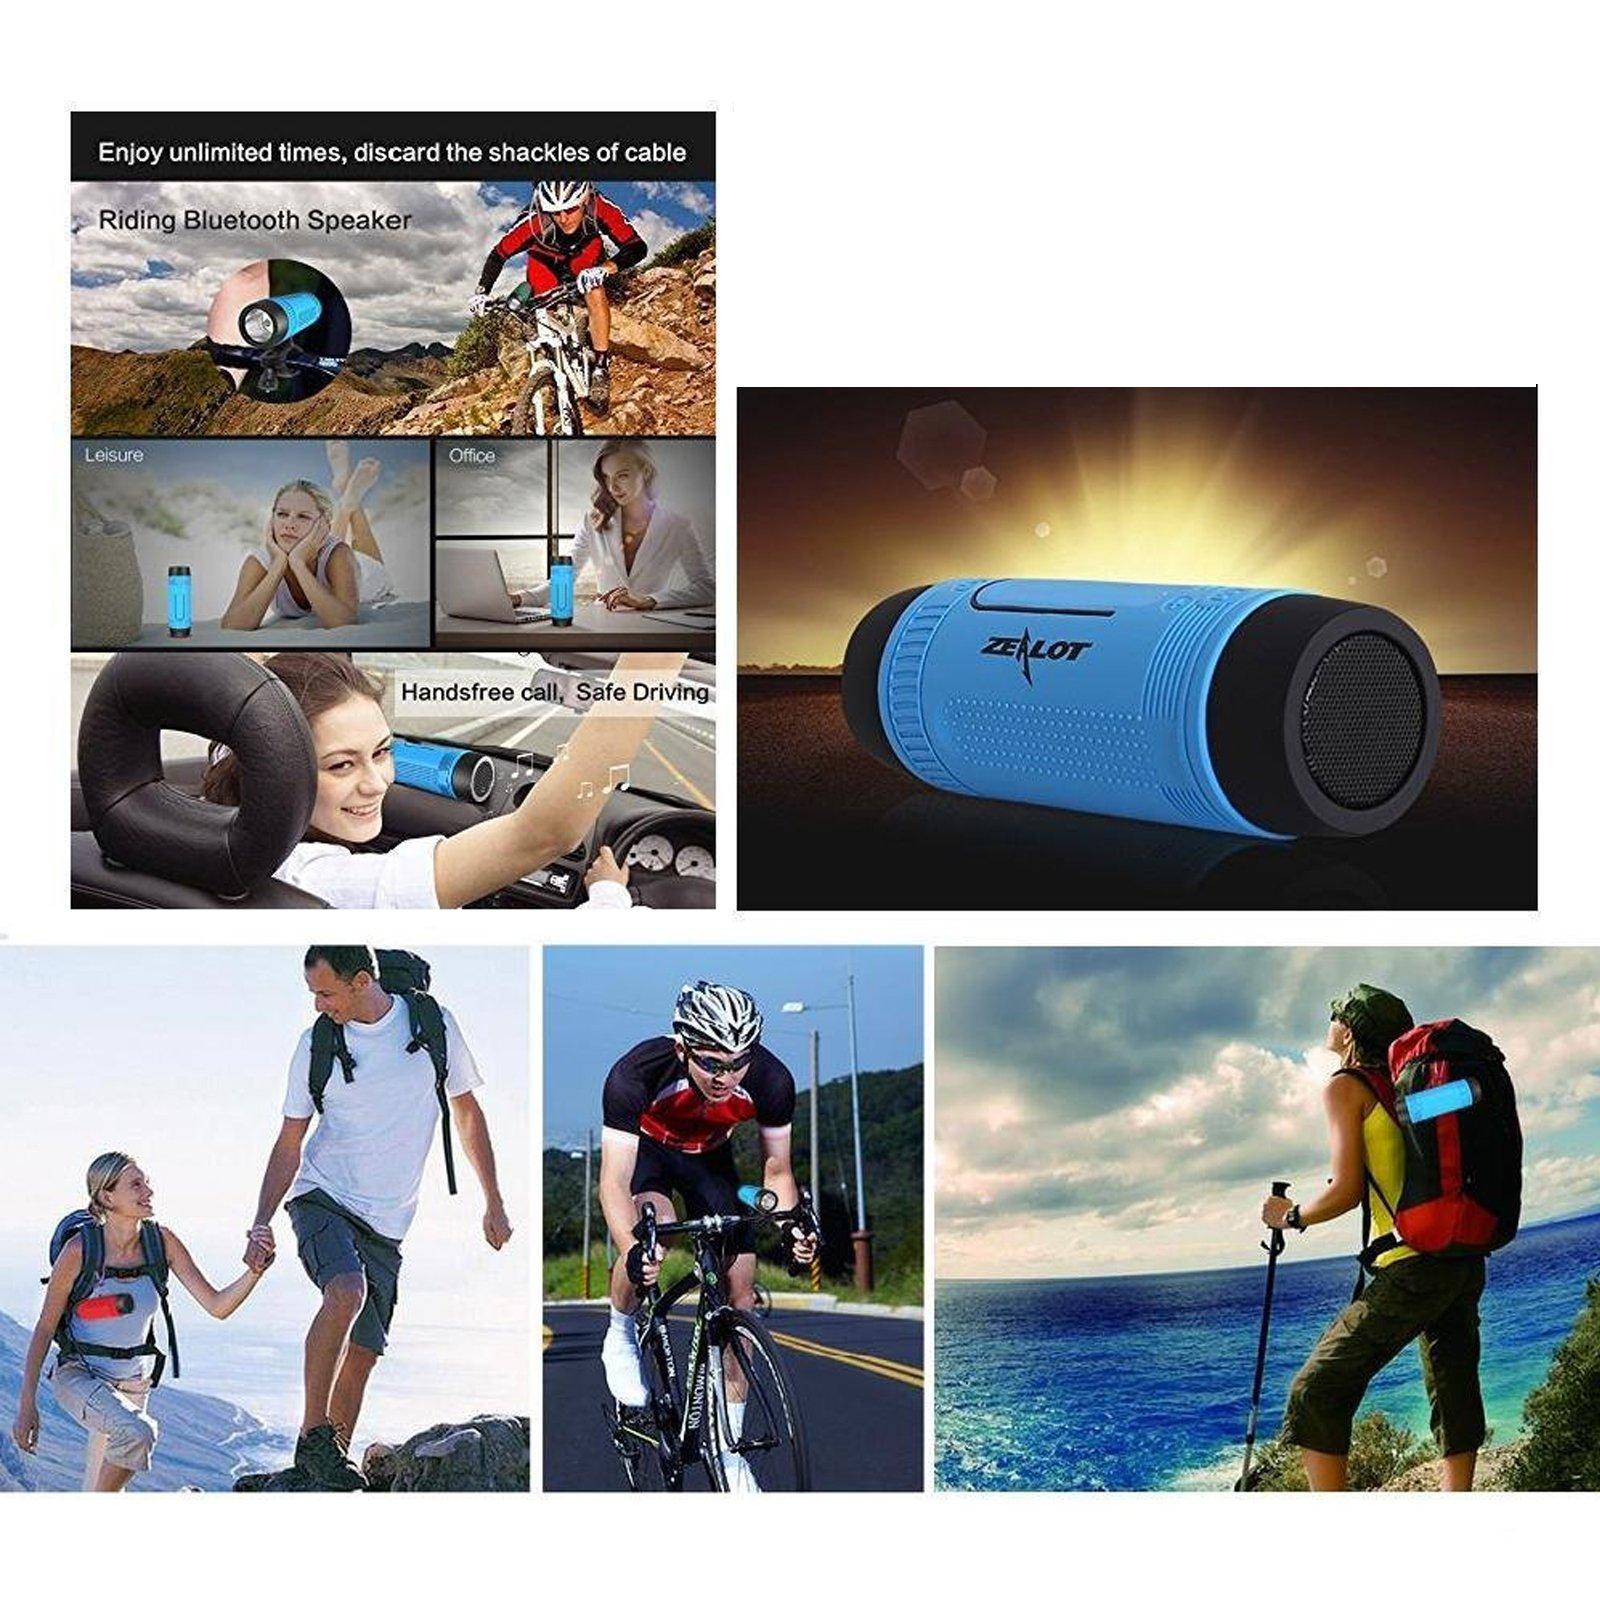 Portable Multifuctional Wireless Bluetooth Speaker 4000mAh Rechargeable Power Bank 3 Mode Emergency Flashlight Handsfree Answering Phone Call TF Card Music Player Mounting Mracket Screw Hole (Blue) by Teastar (Image #3)